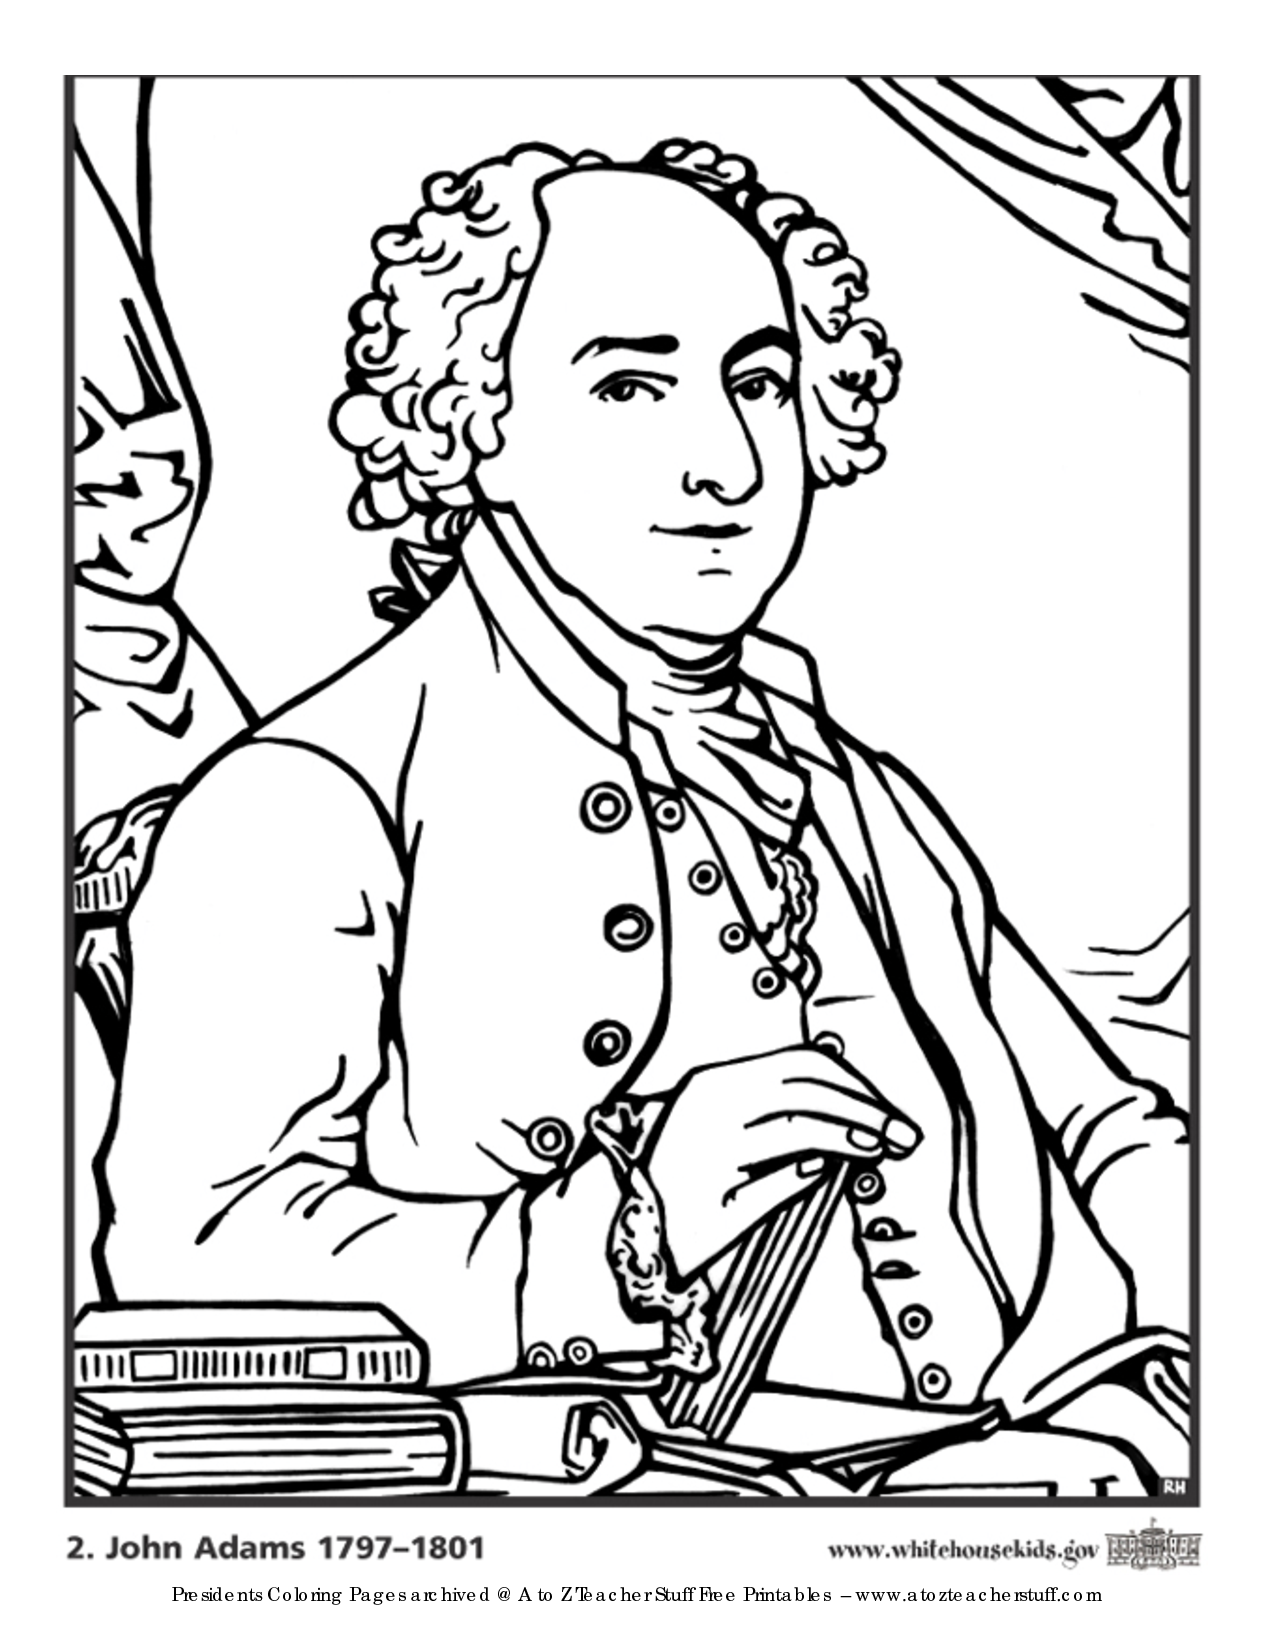 prsidents coloring pages - photo#32